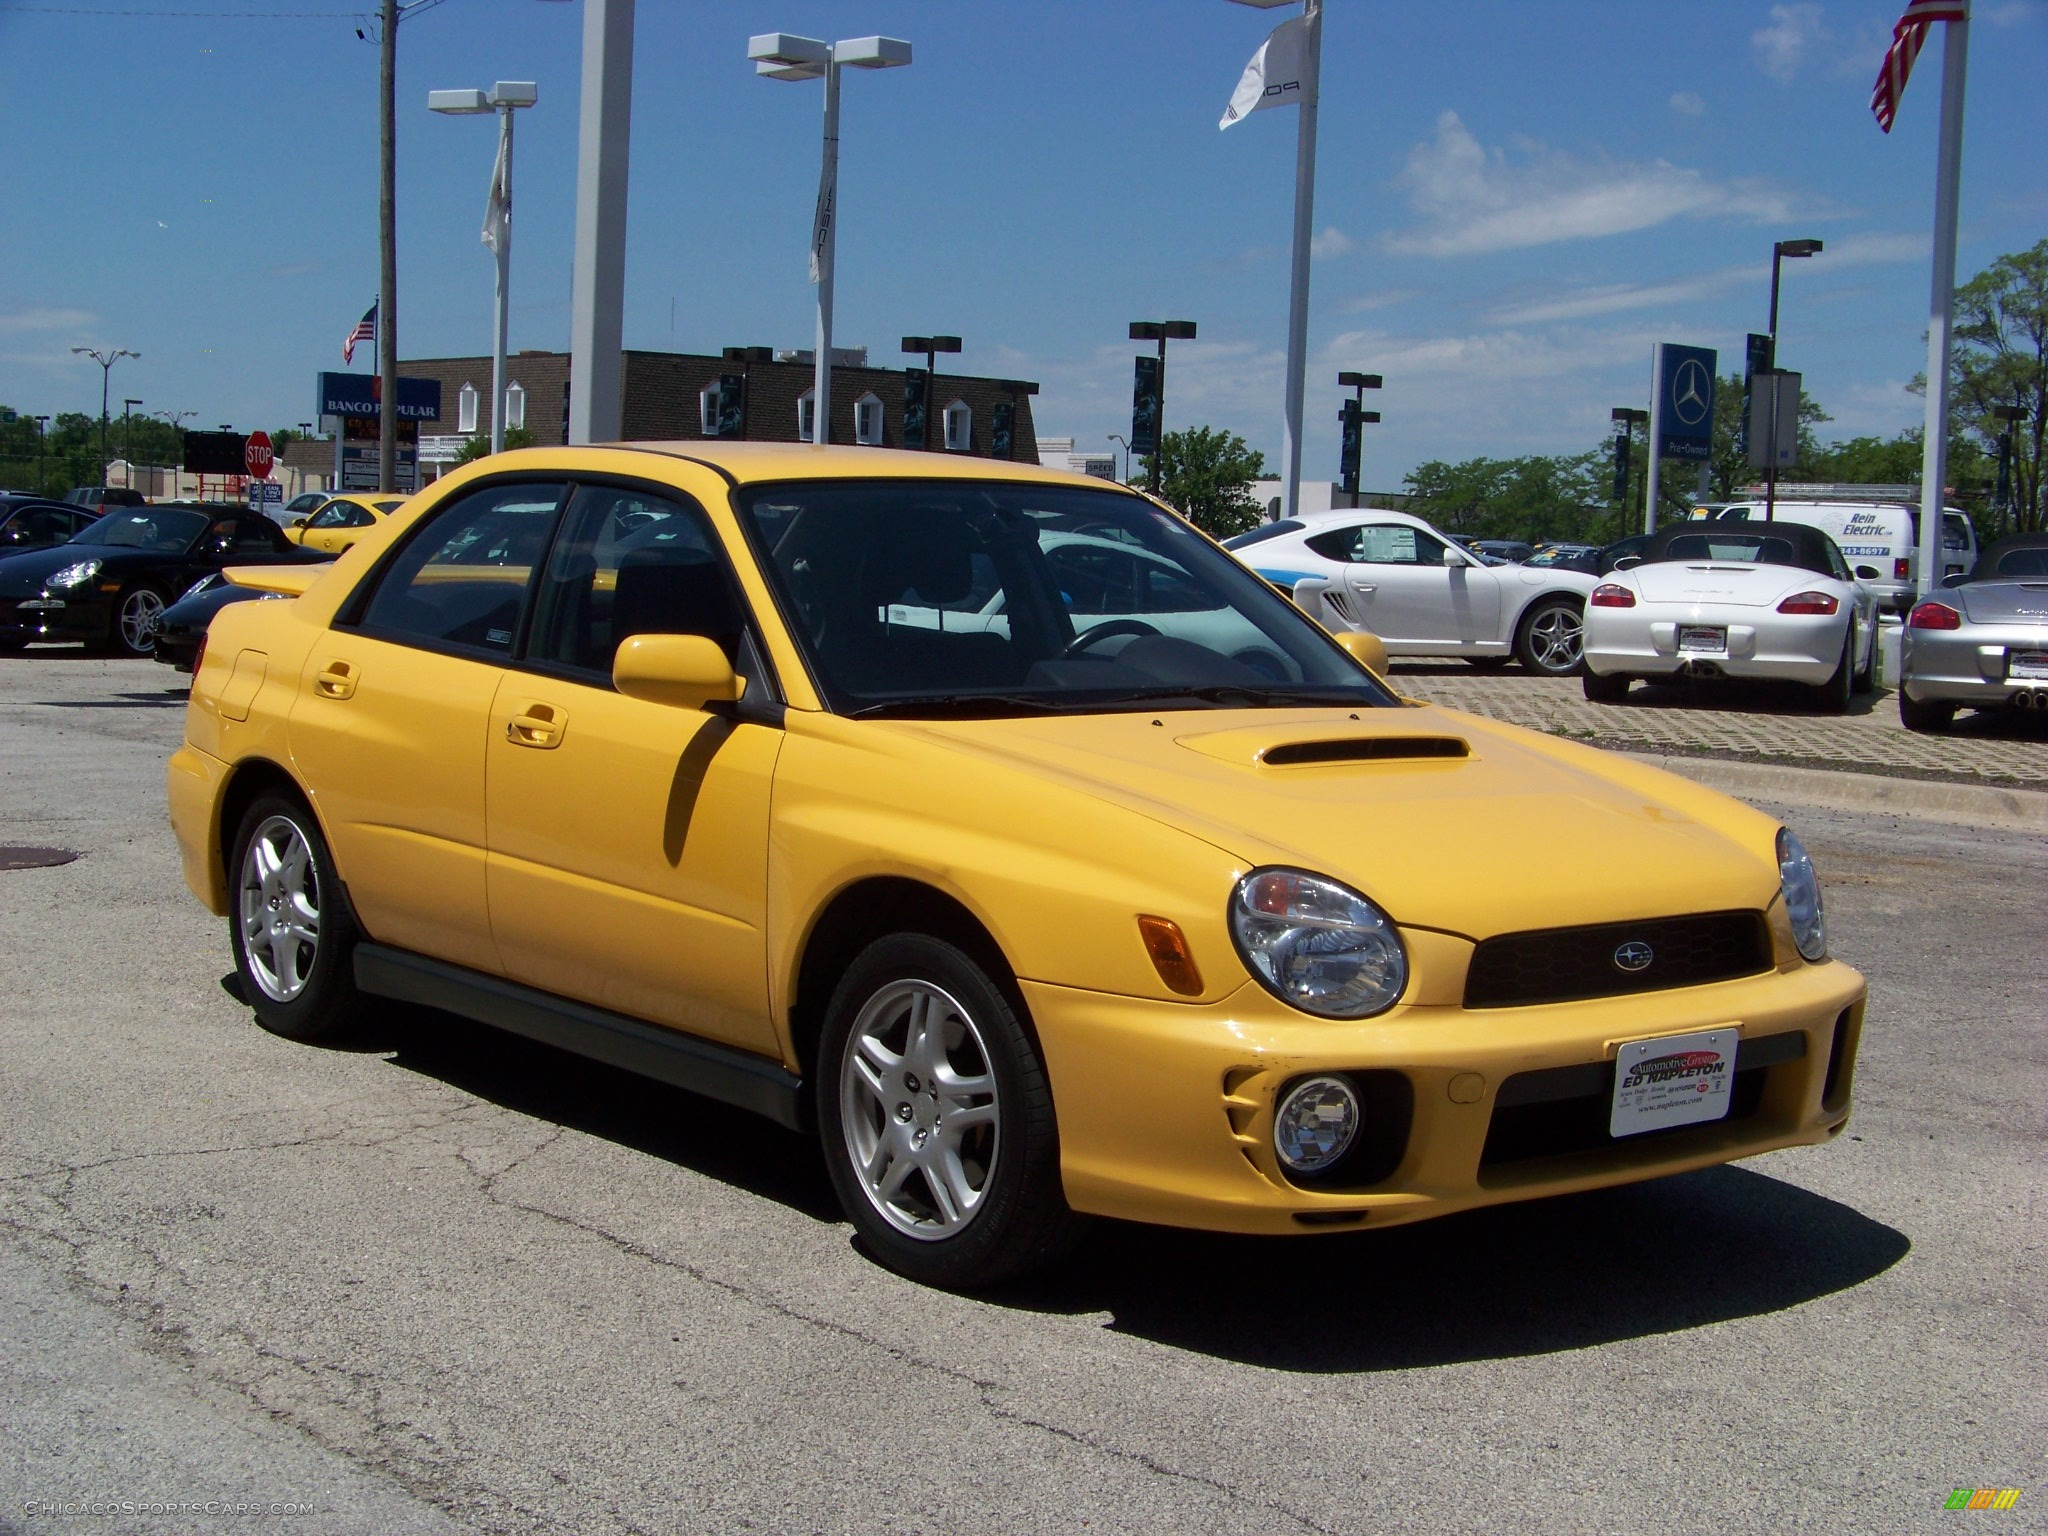 2003 Subaru Impreza Wrx Sedan In Sonic Yellow Photo 3